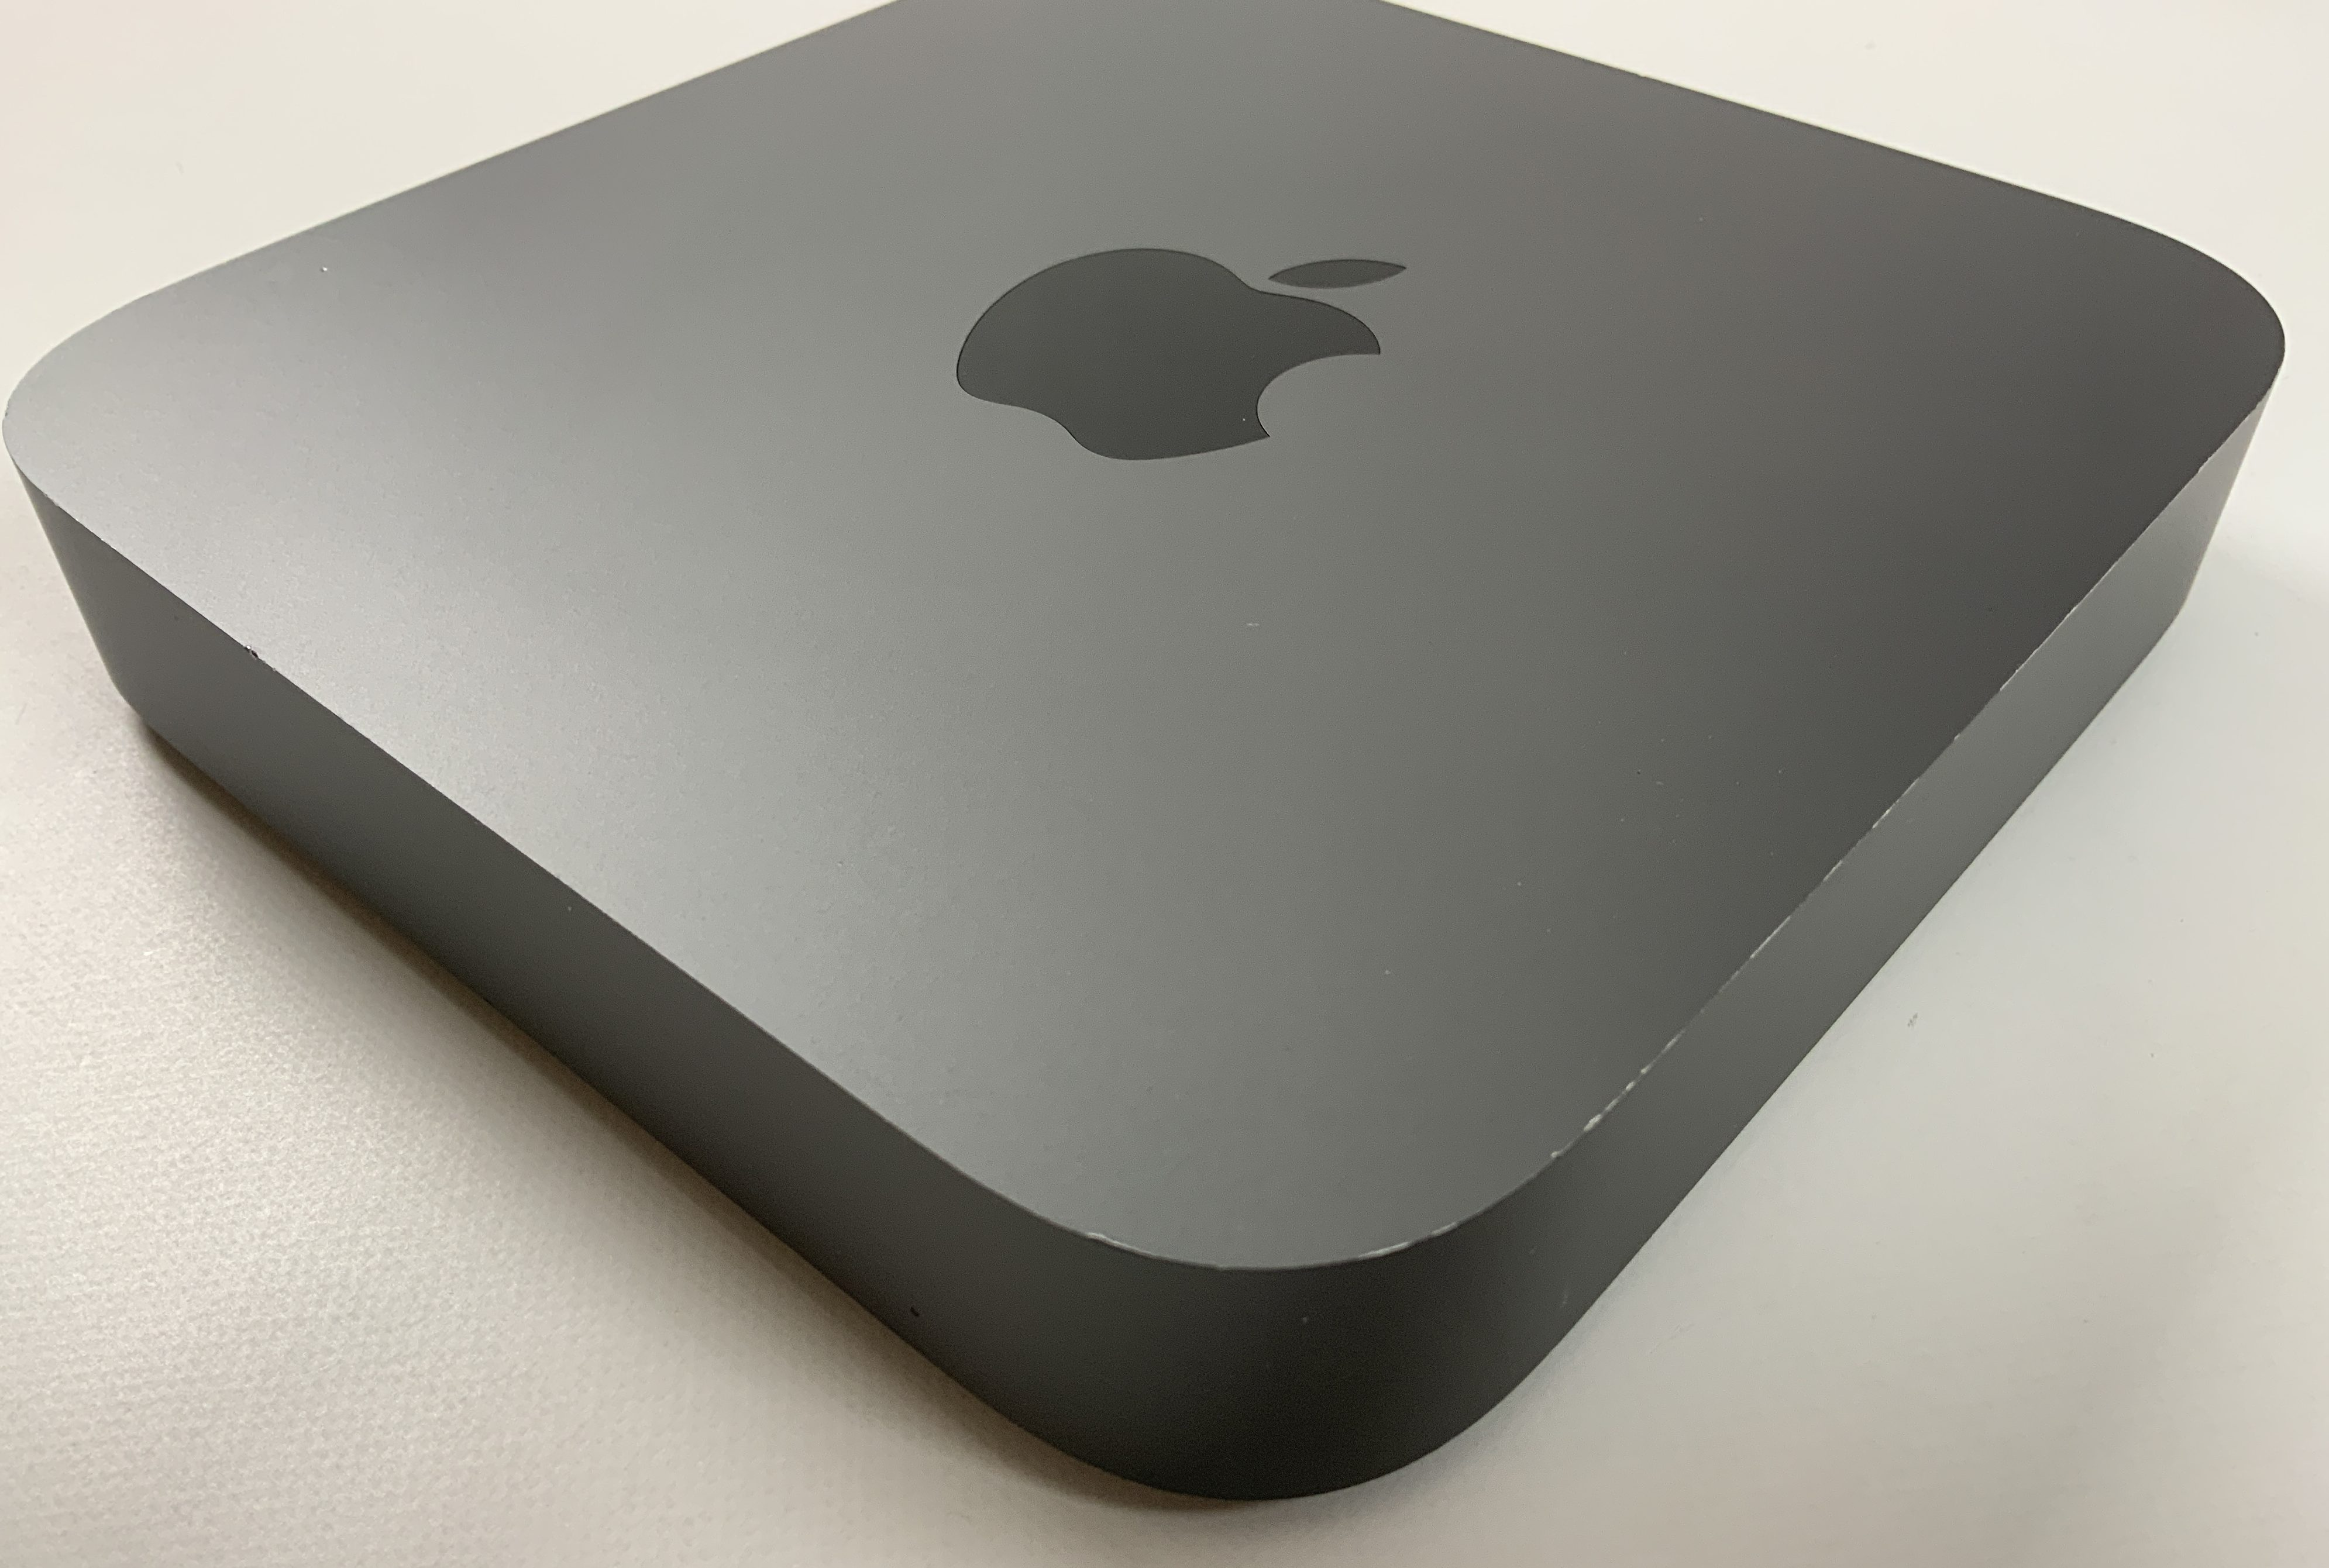 Mac Mini Late 2018 (Intel 6-Core i5 3.0 GHz 8 GB RAM 256 GB SSD), Intel 6-Core i5 3.0 GHz, 8 GB RAM, 256 GB SSD, Afbeelding 3